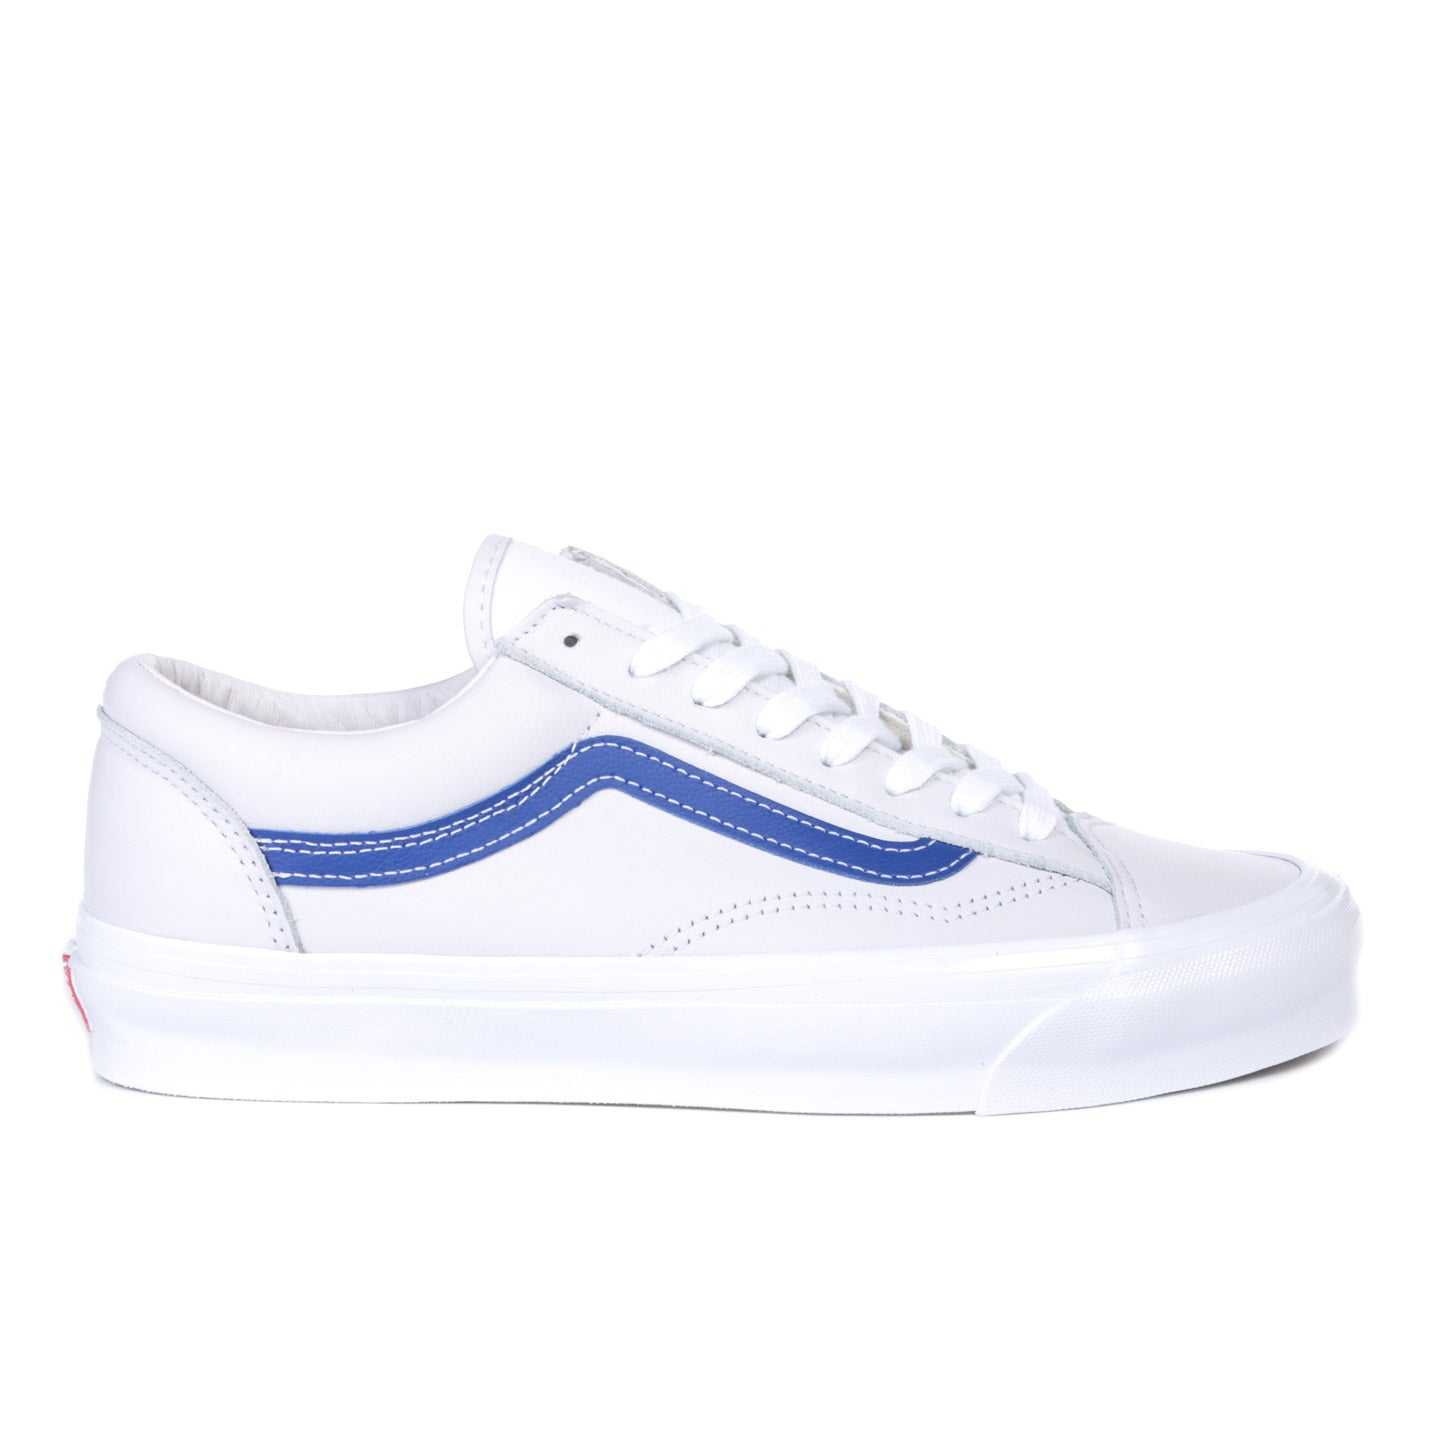 VAULT BY VANS OG OLD SKOOL LX CHECKERBOARD MAJOLICA BLUE